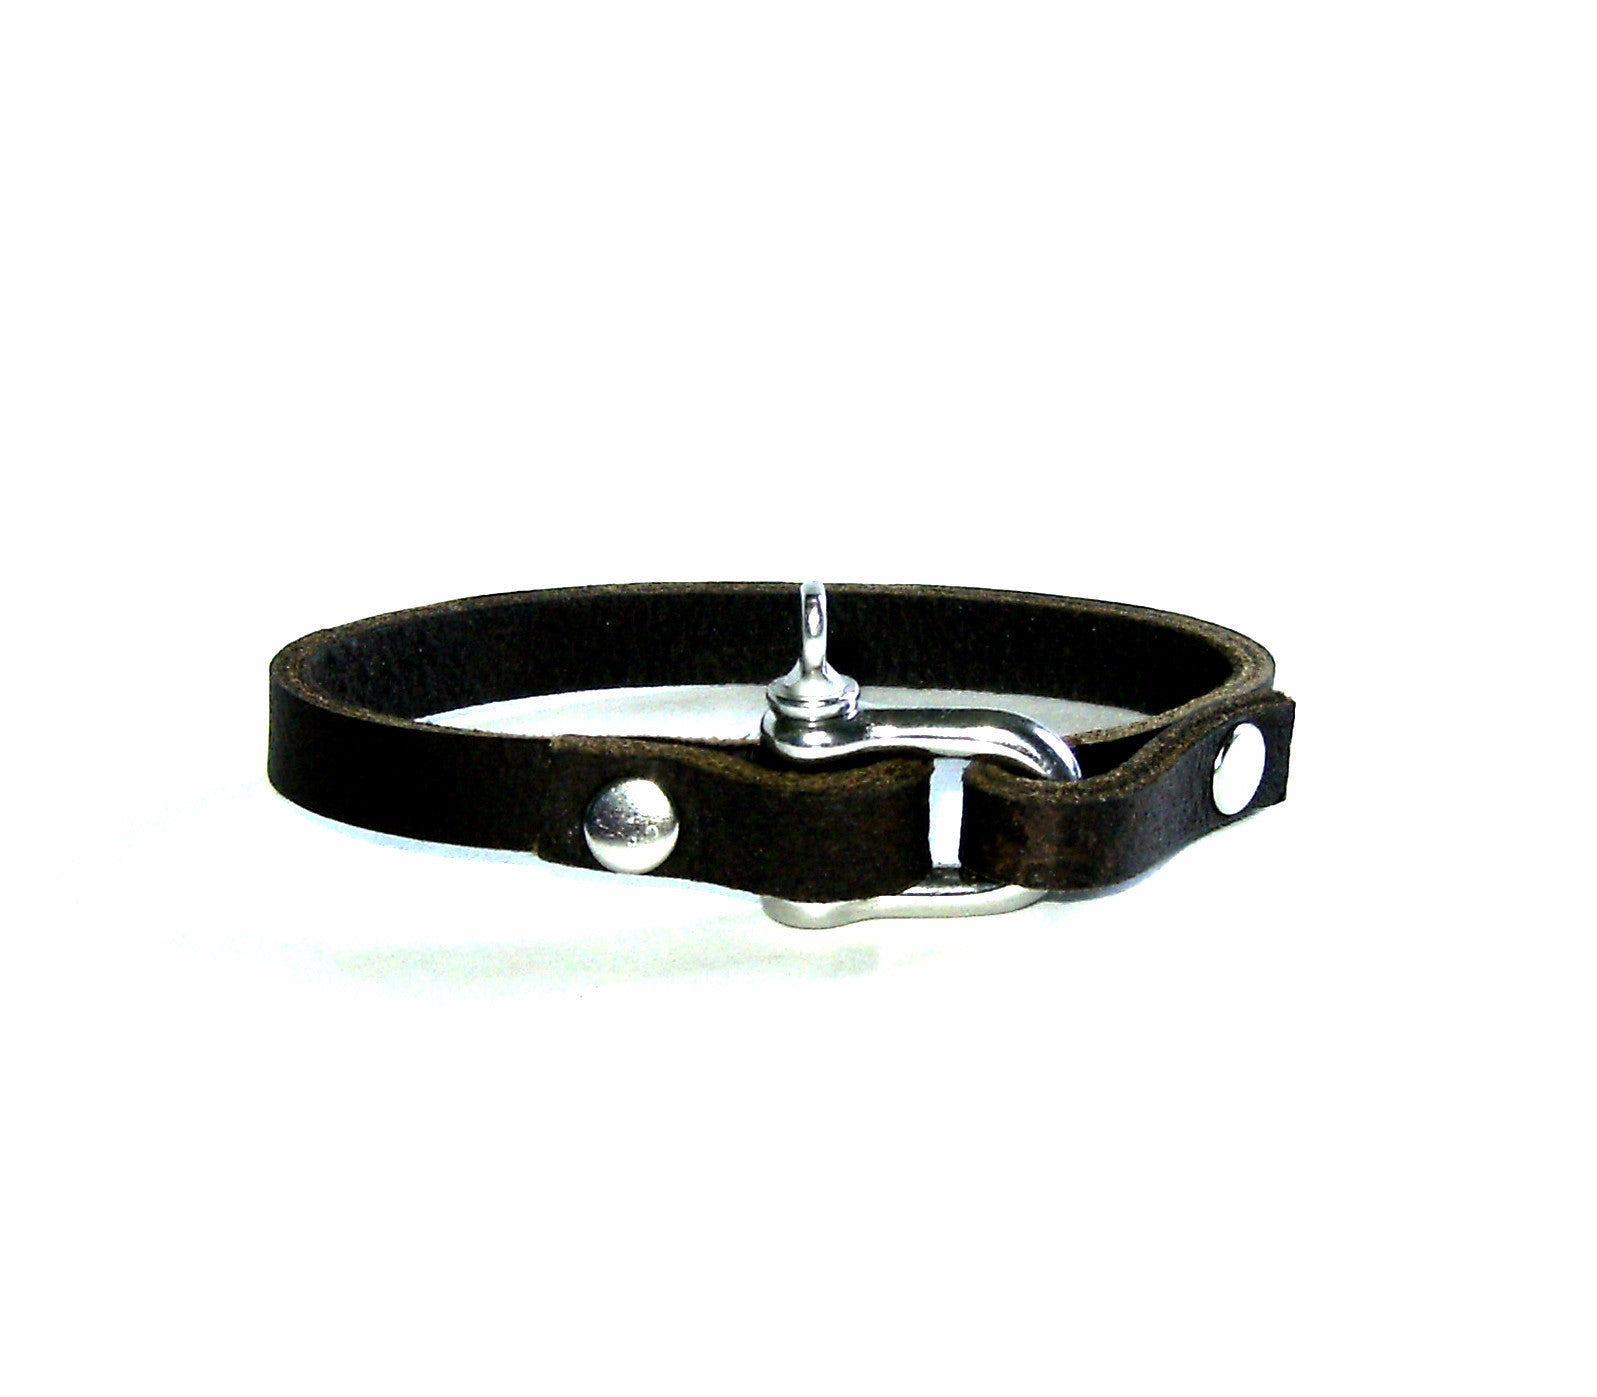 Stainless and Leather Wrist Band